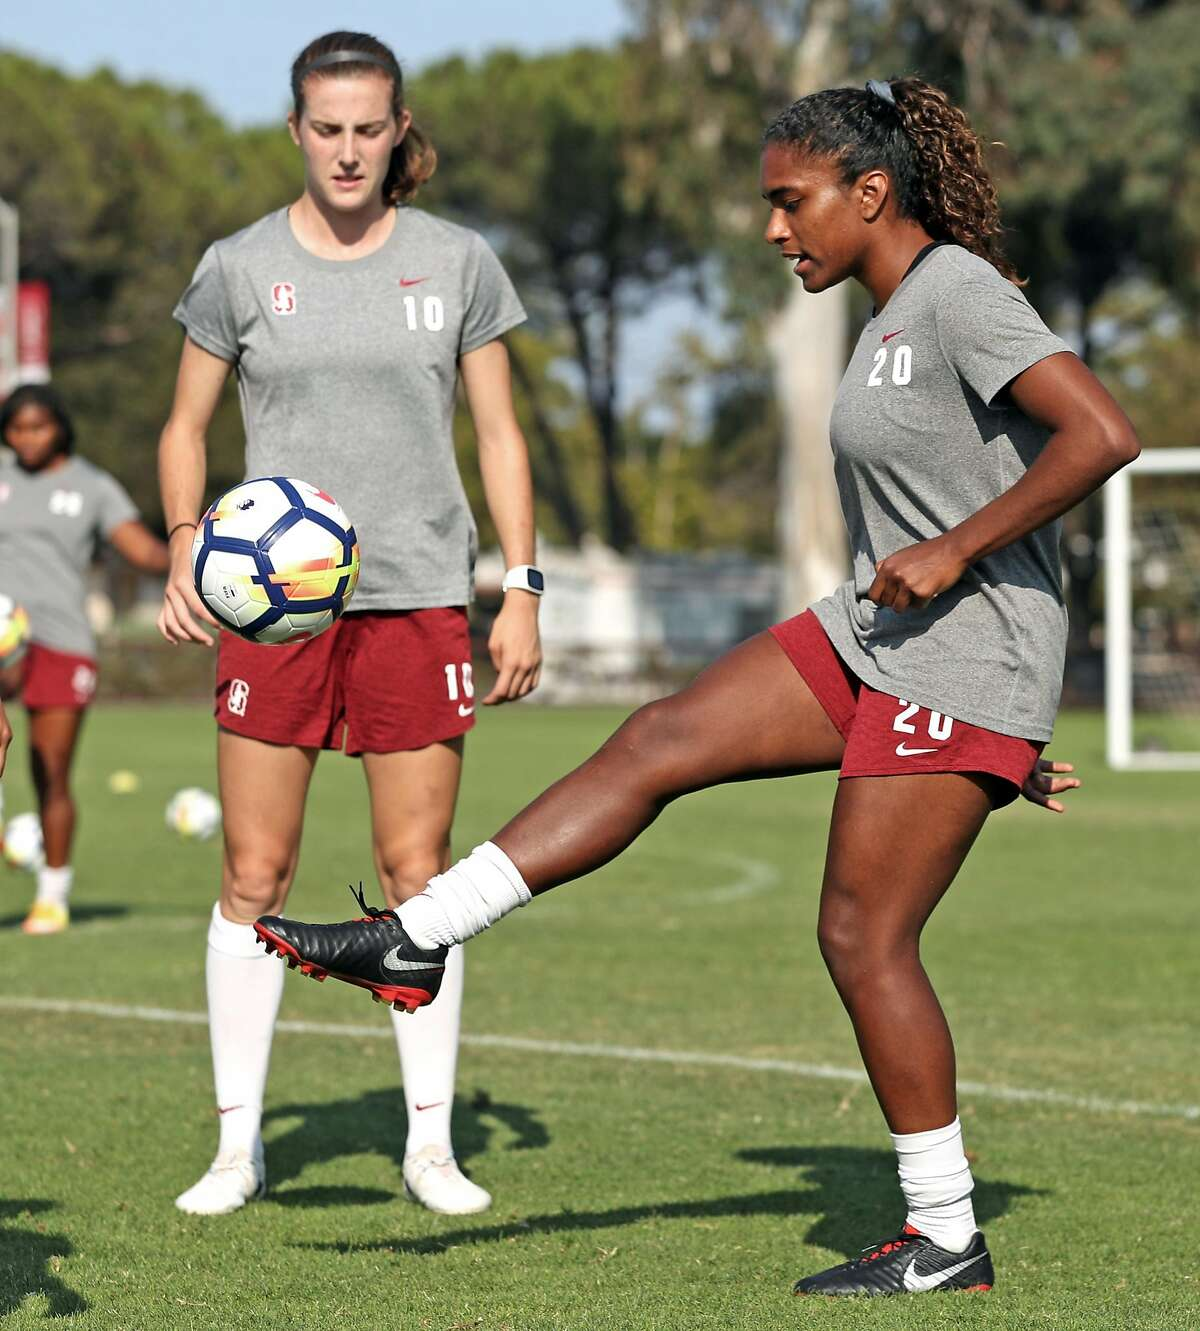 Stanford Women's Soccer's Catarina Macro (20) and Tierna Davidson (10) during practice in Stanford, Calif. on Tuesday, August 14, 2018.